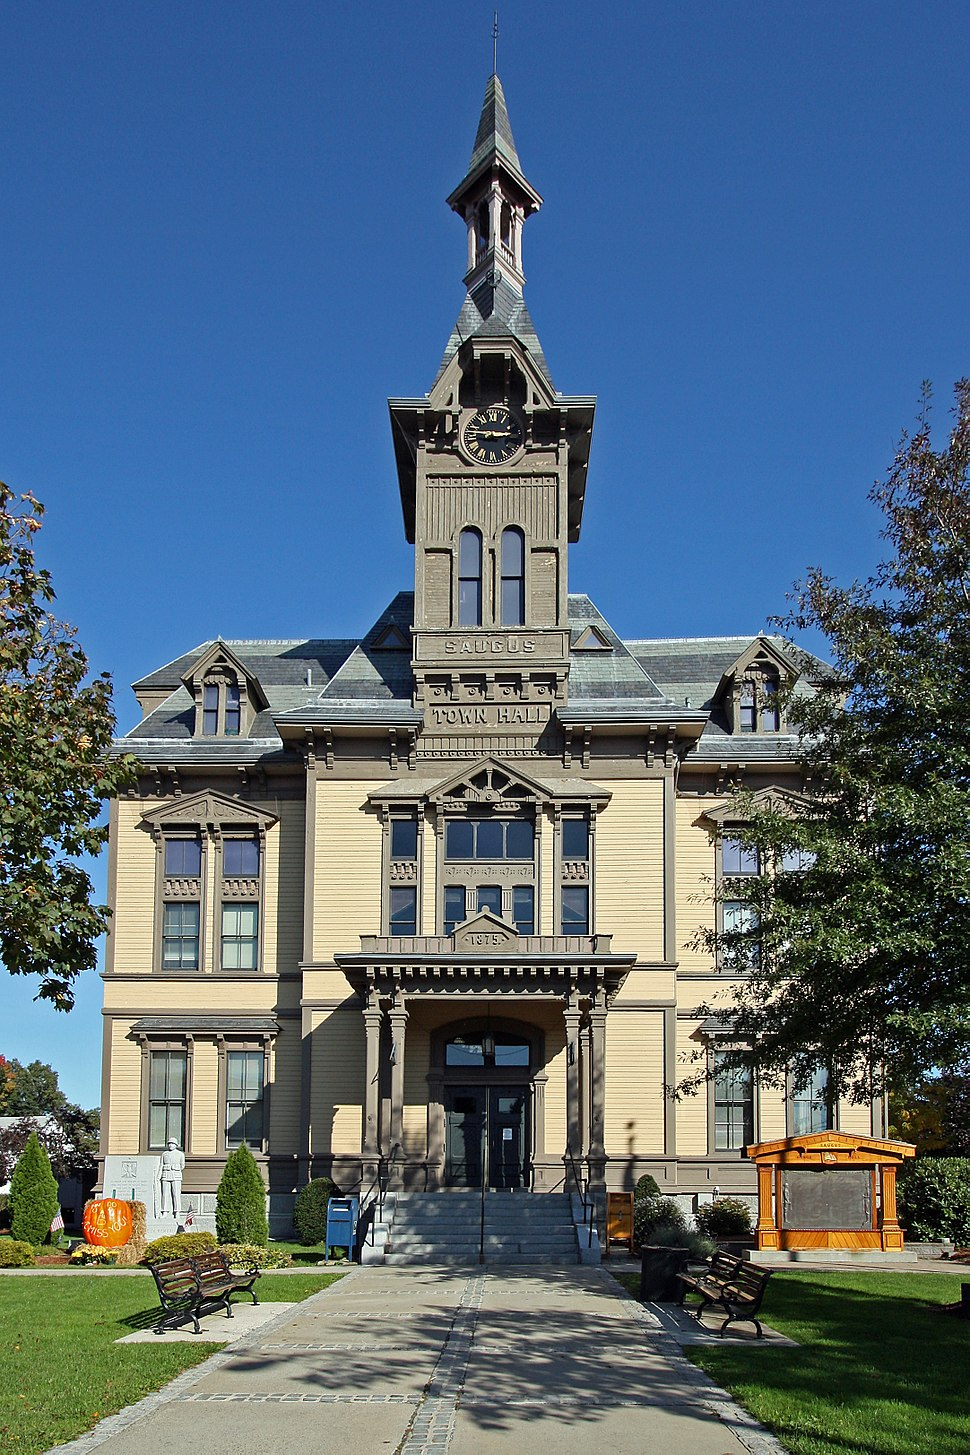 Town Hall front view